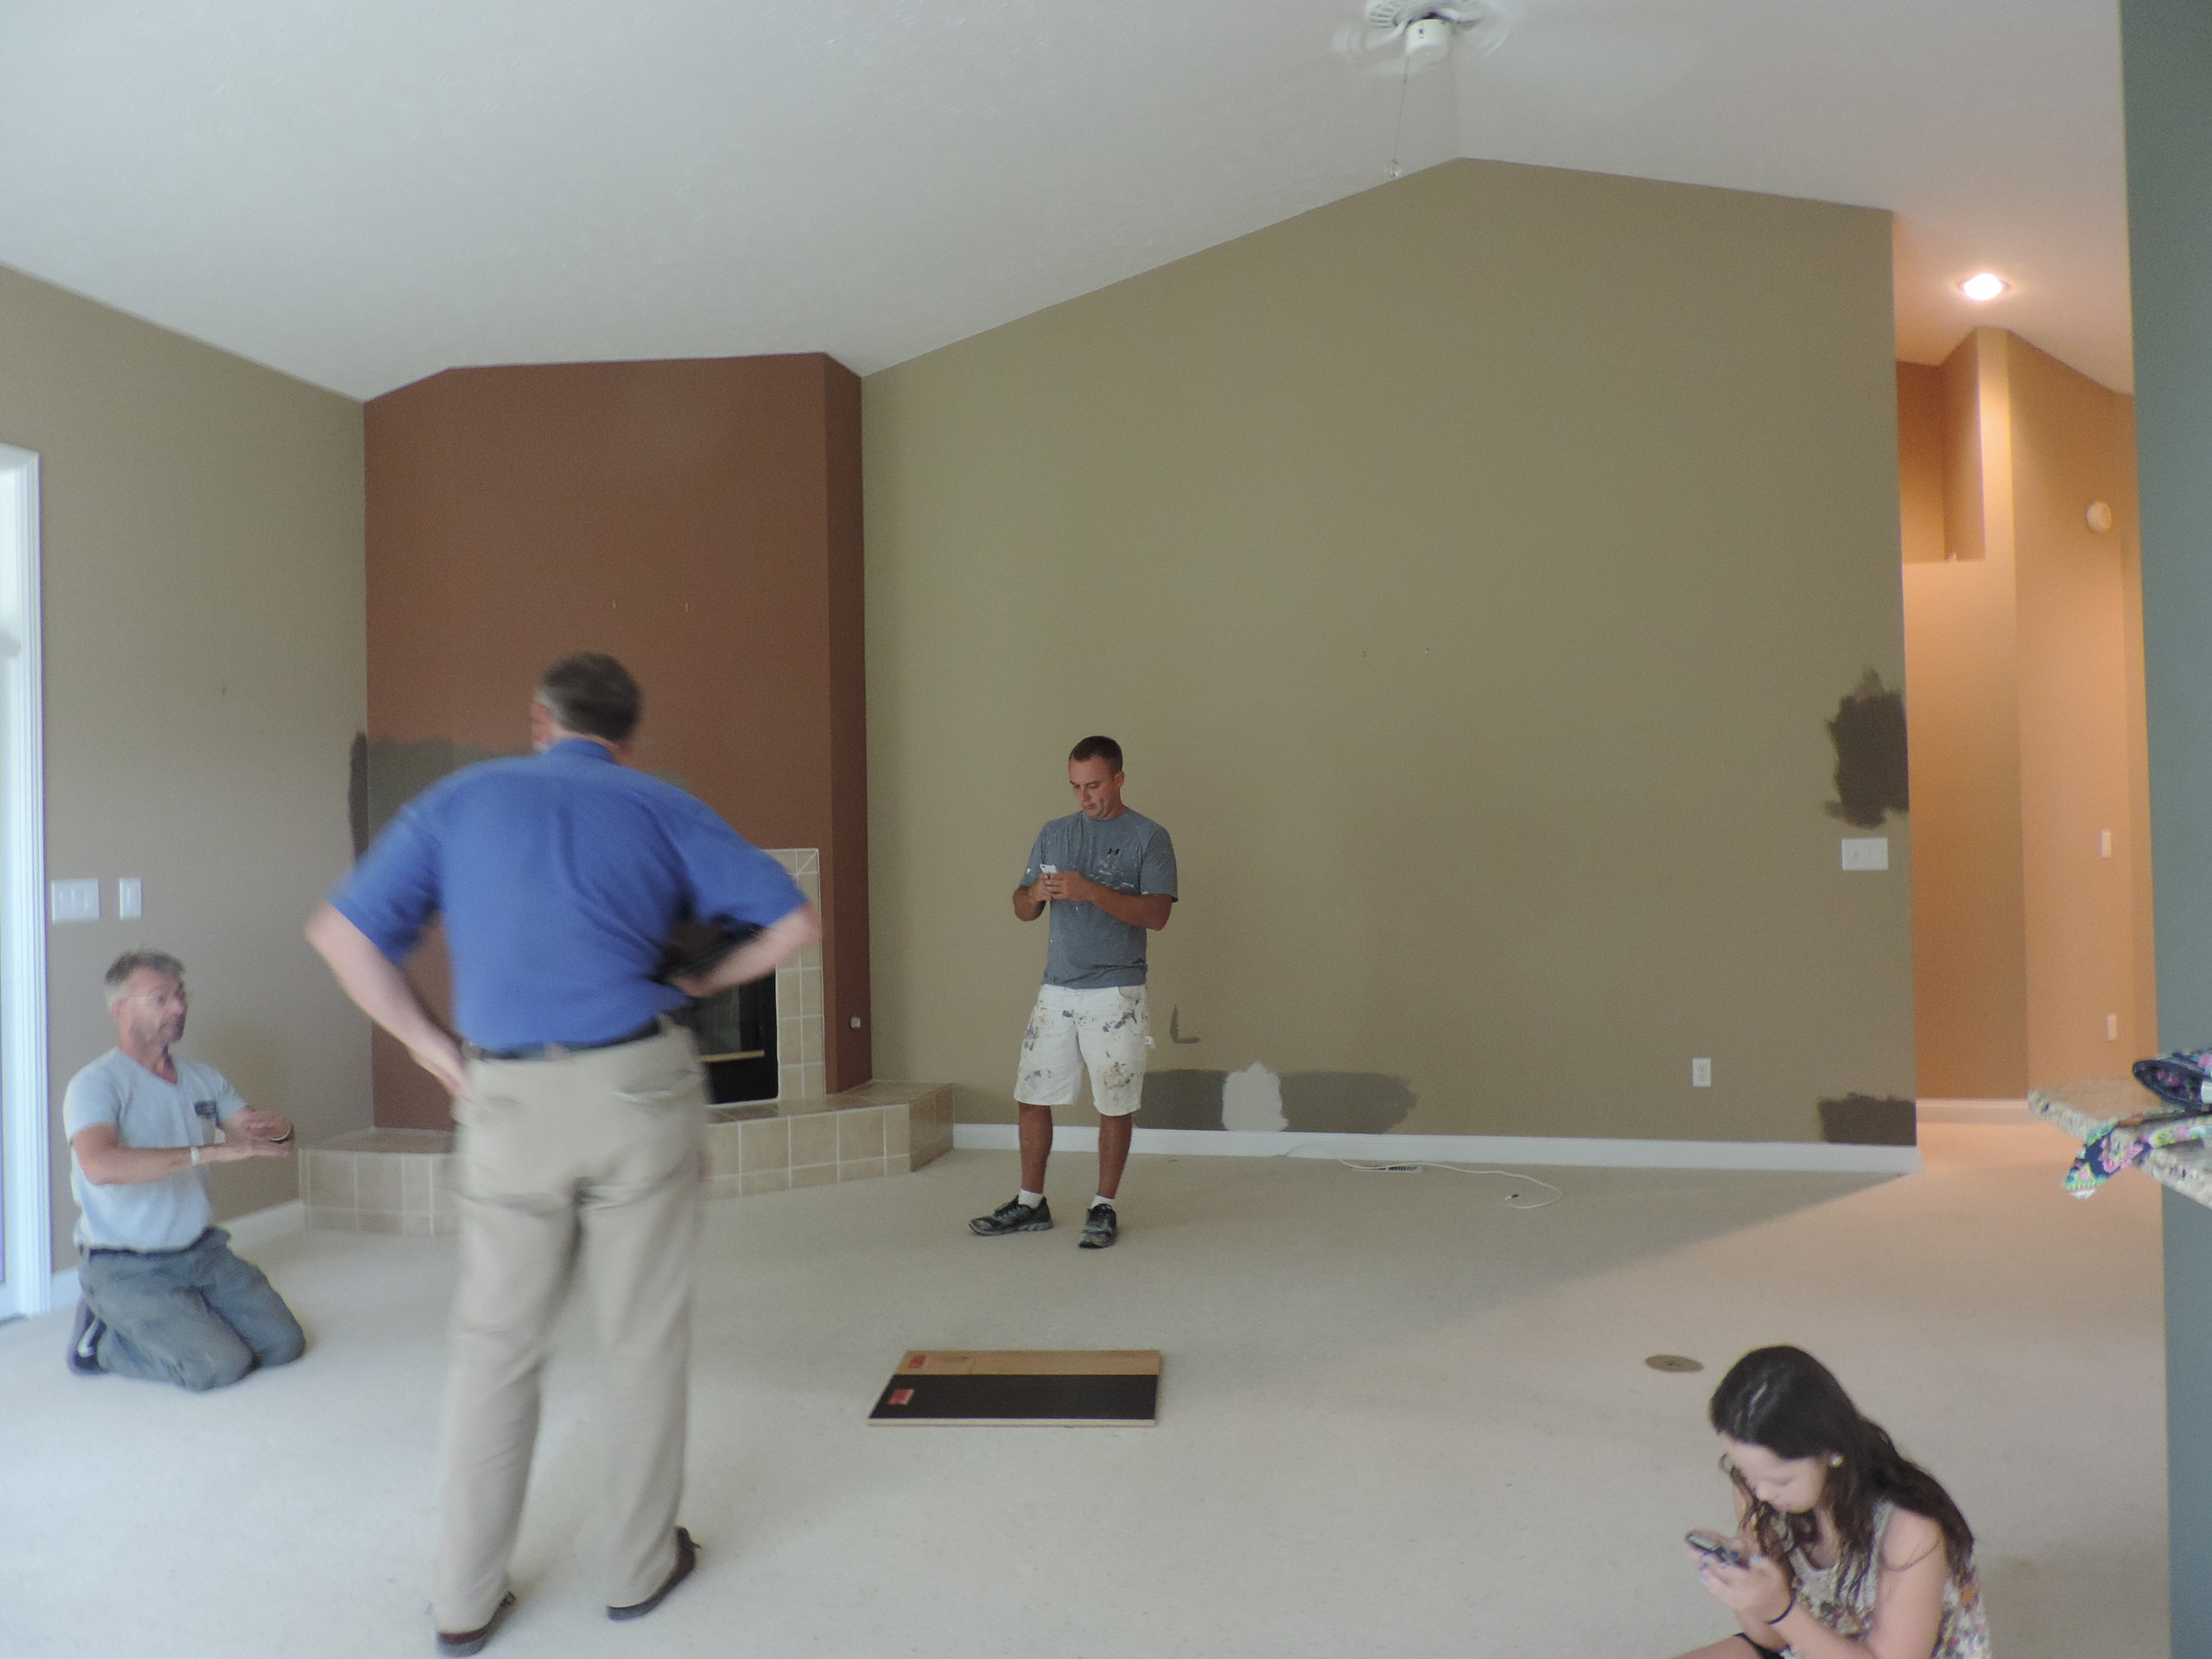 Never mind these people (men discussing installation things, child getting too much screen time): just check out the space. Okay, actually, note that I am thrilled to be working with JL Benton Contracting again and Carpets Plus Colortile on this project.